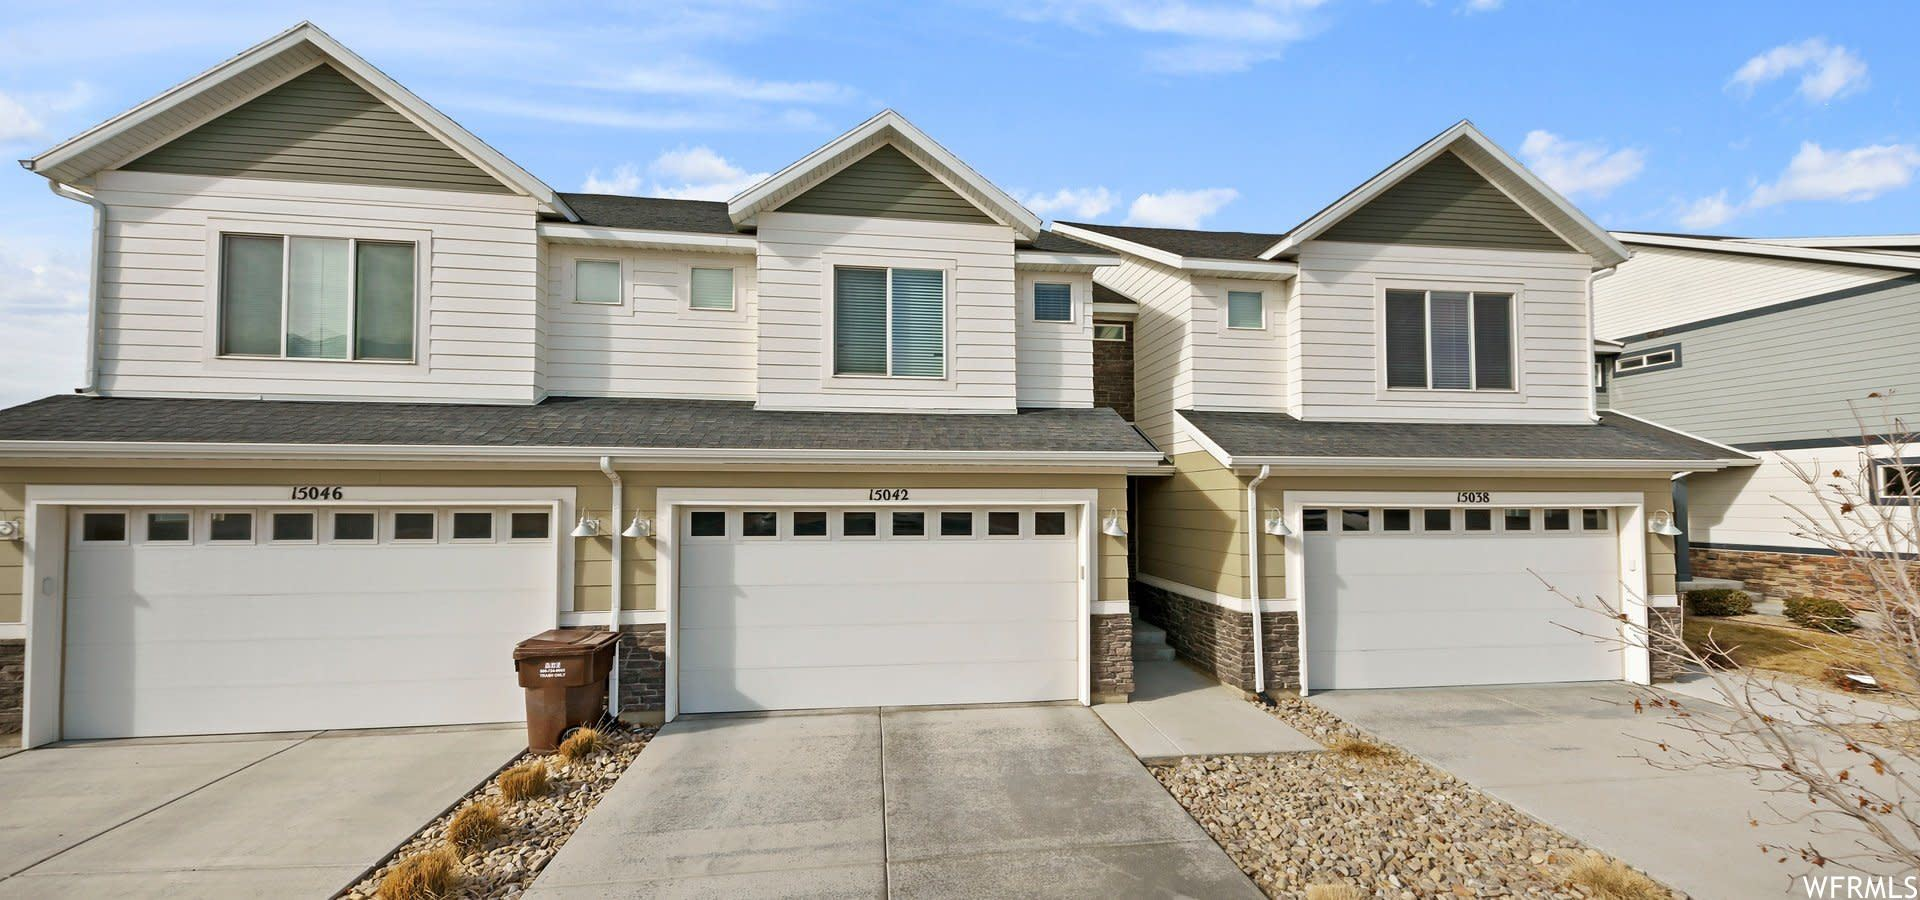 Photo of 15042 S GALLANT DR, Bluffdale, UT 84065 (MLS # 1767948)